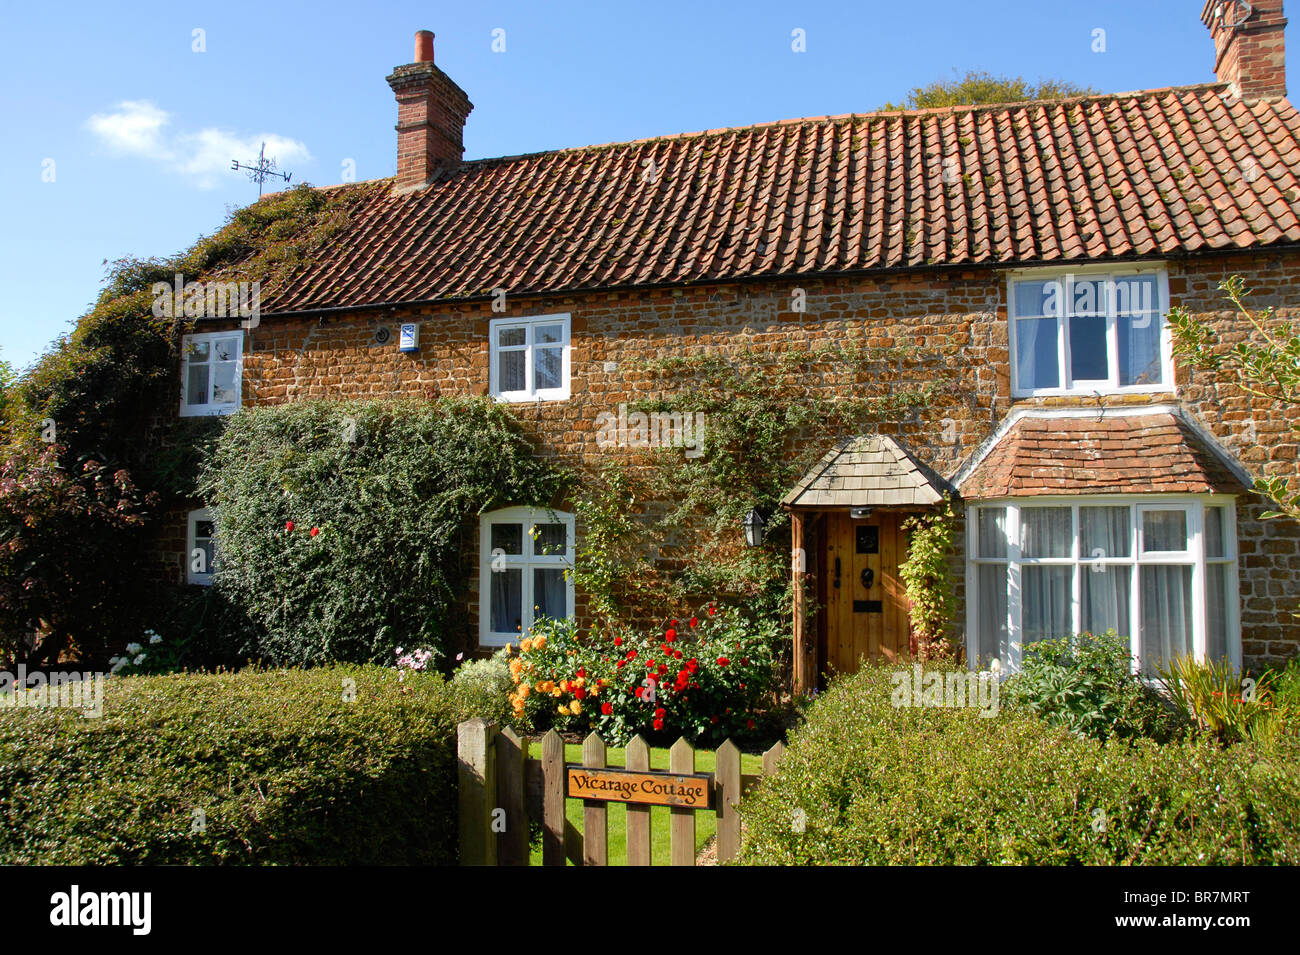 Vicarage Cottage, Old Hunstanton, Norfolk - Stock Image